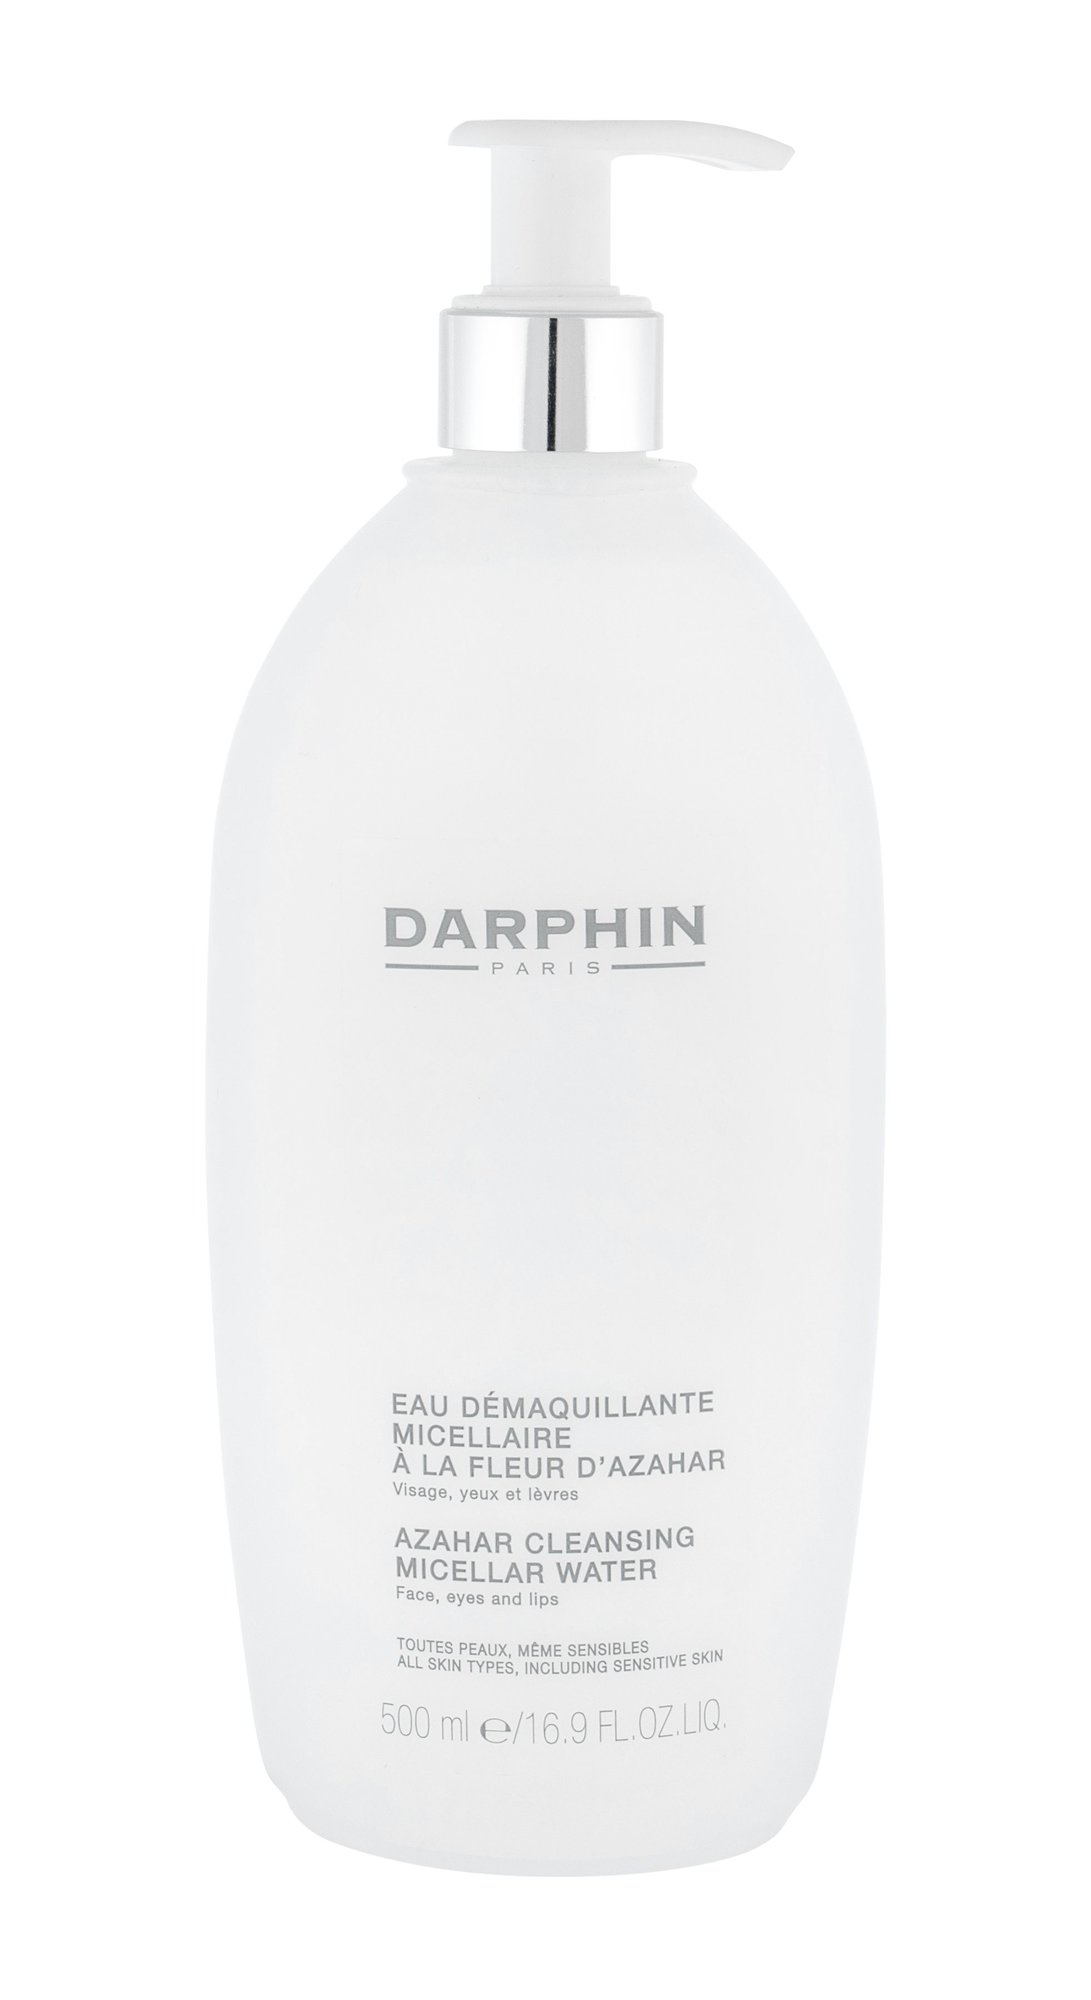 Darphin Cleansers Cleansing Water 500ml  Azahar Cleansing Micellar Water